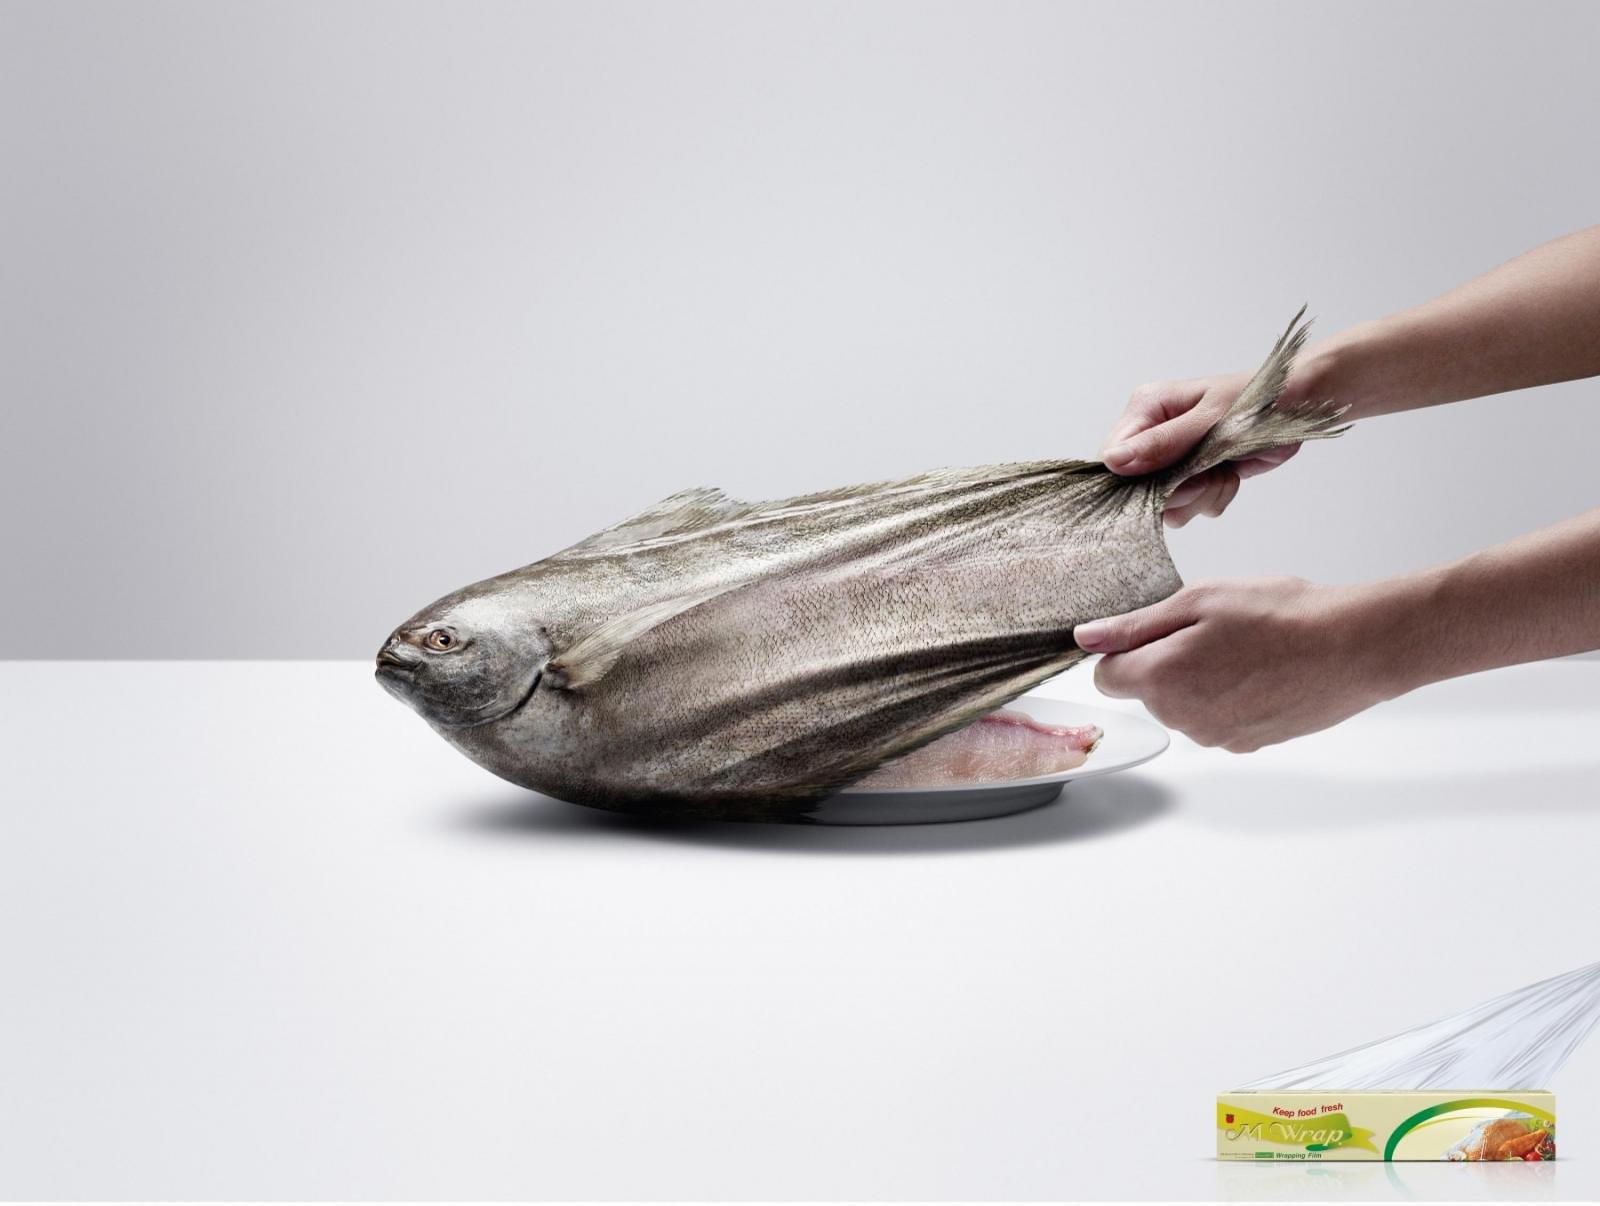 M Wrap Outdoor Ad -  Fish